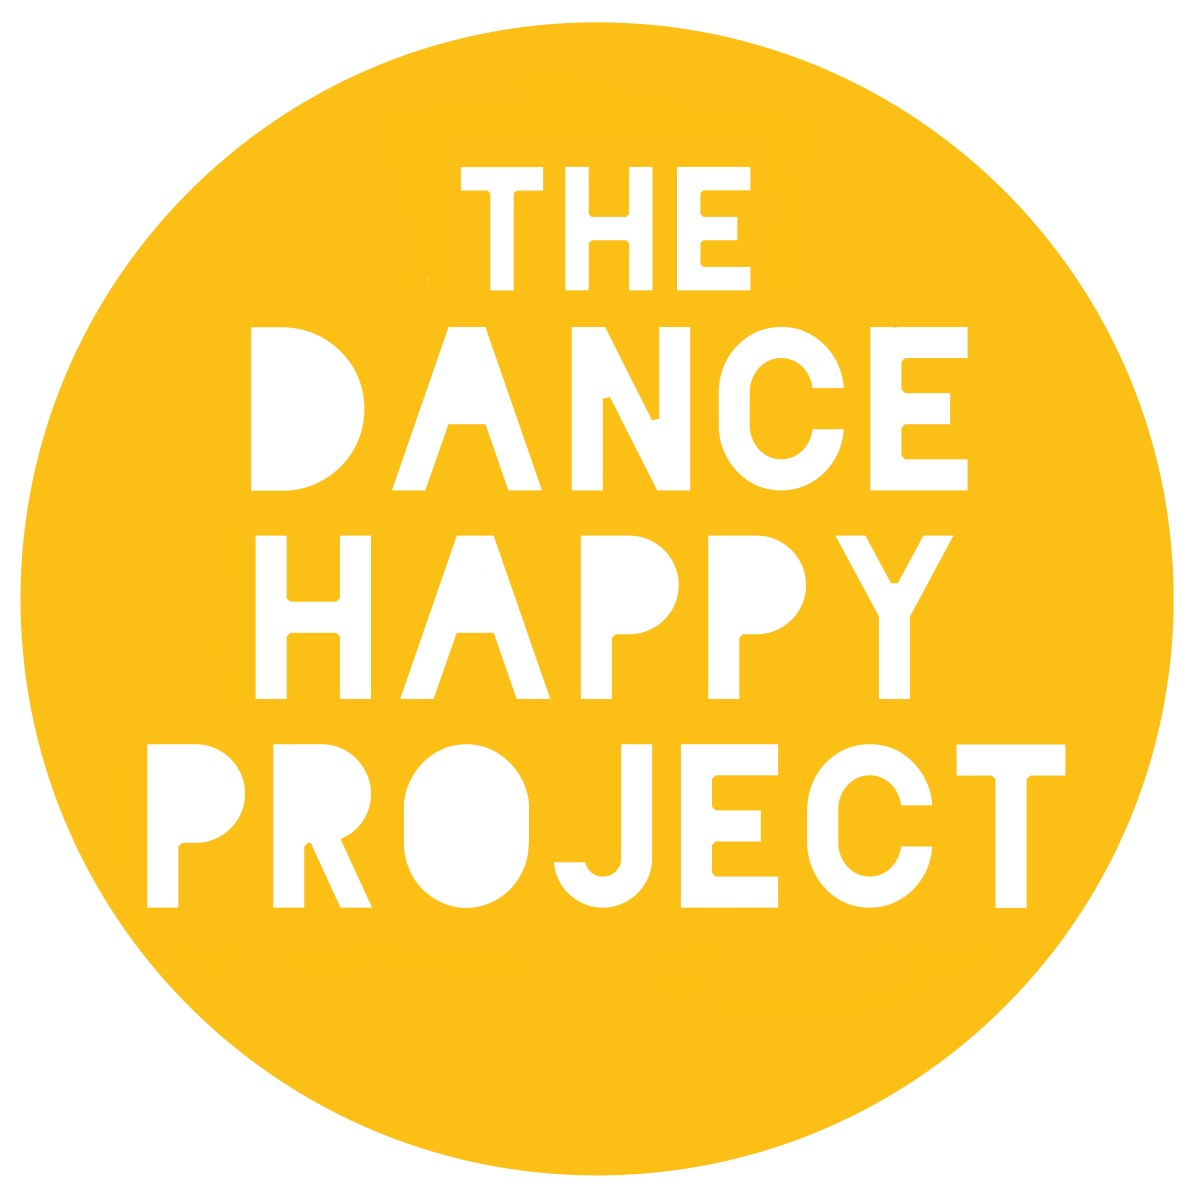 Happy Dance Project